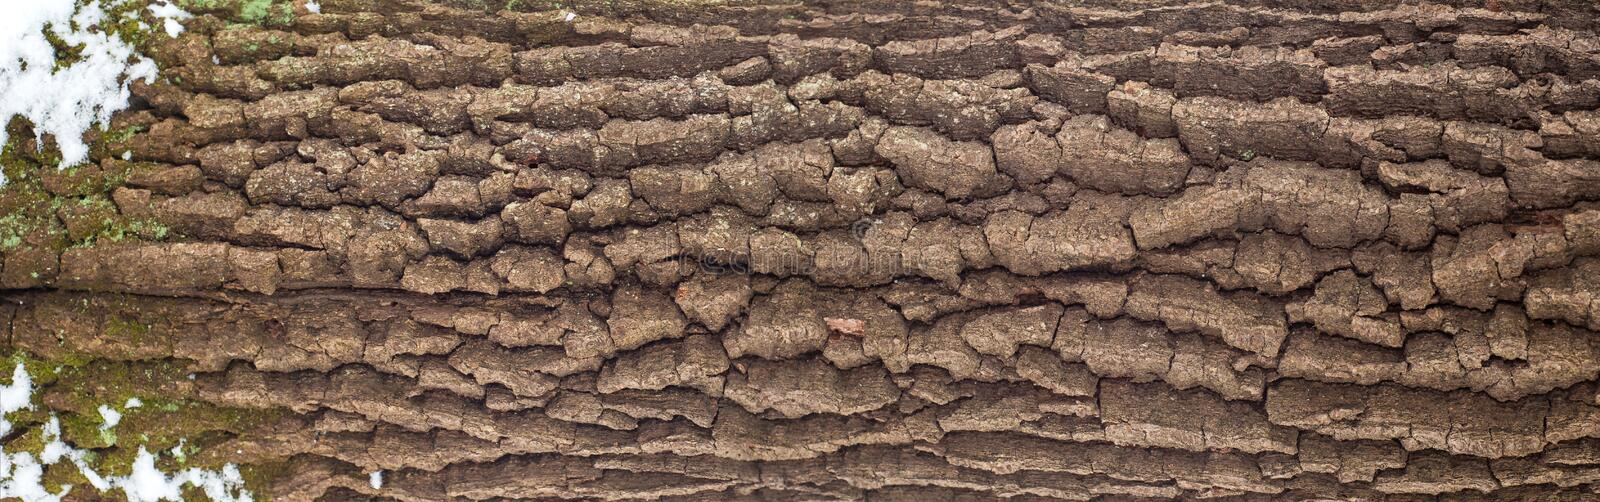 Relief texture of the bark of oak with green moss, lichen and white snow on it. royalty free stock image